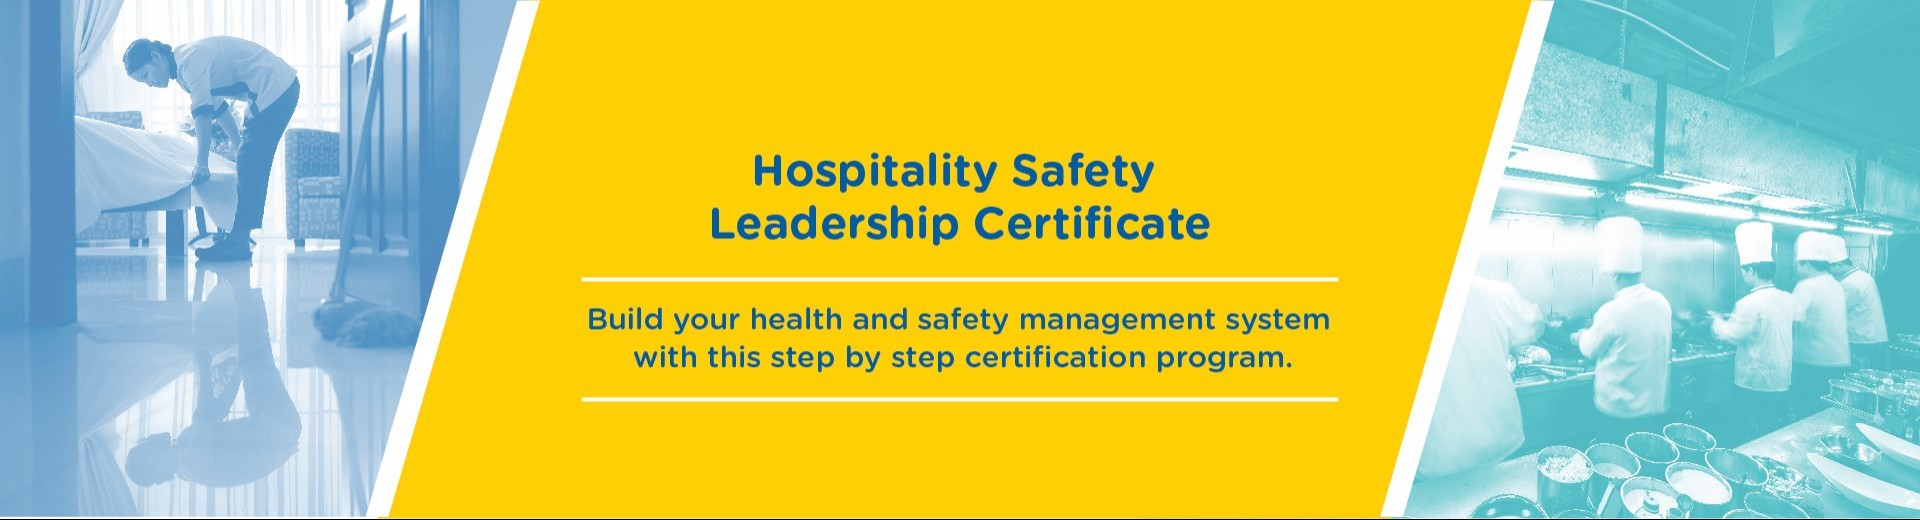 2017 Hospitality Safety Leadership Certificate Holders